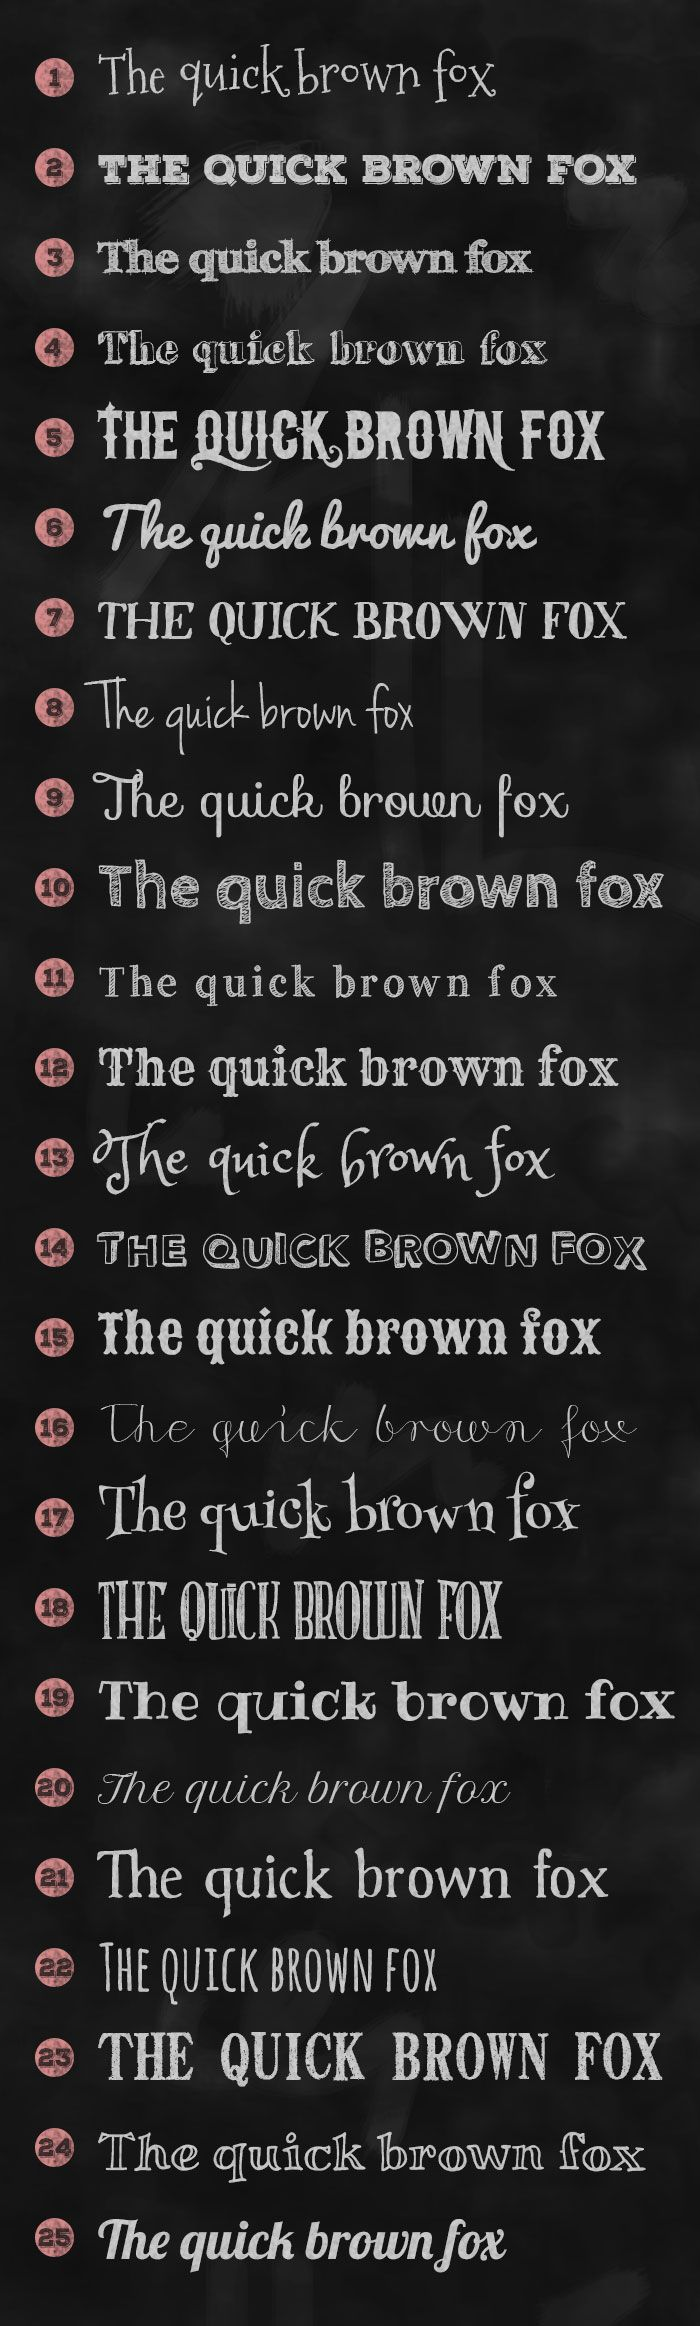 I've recently been looking into creating a chalk board design and I started looking for the perfect font! I love the chalk board designs where the fonts are all mismatched together and handwriting